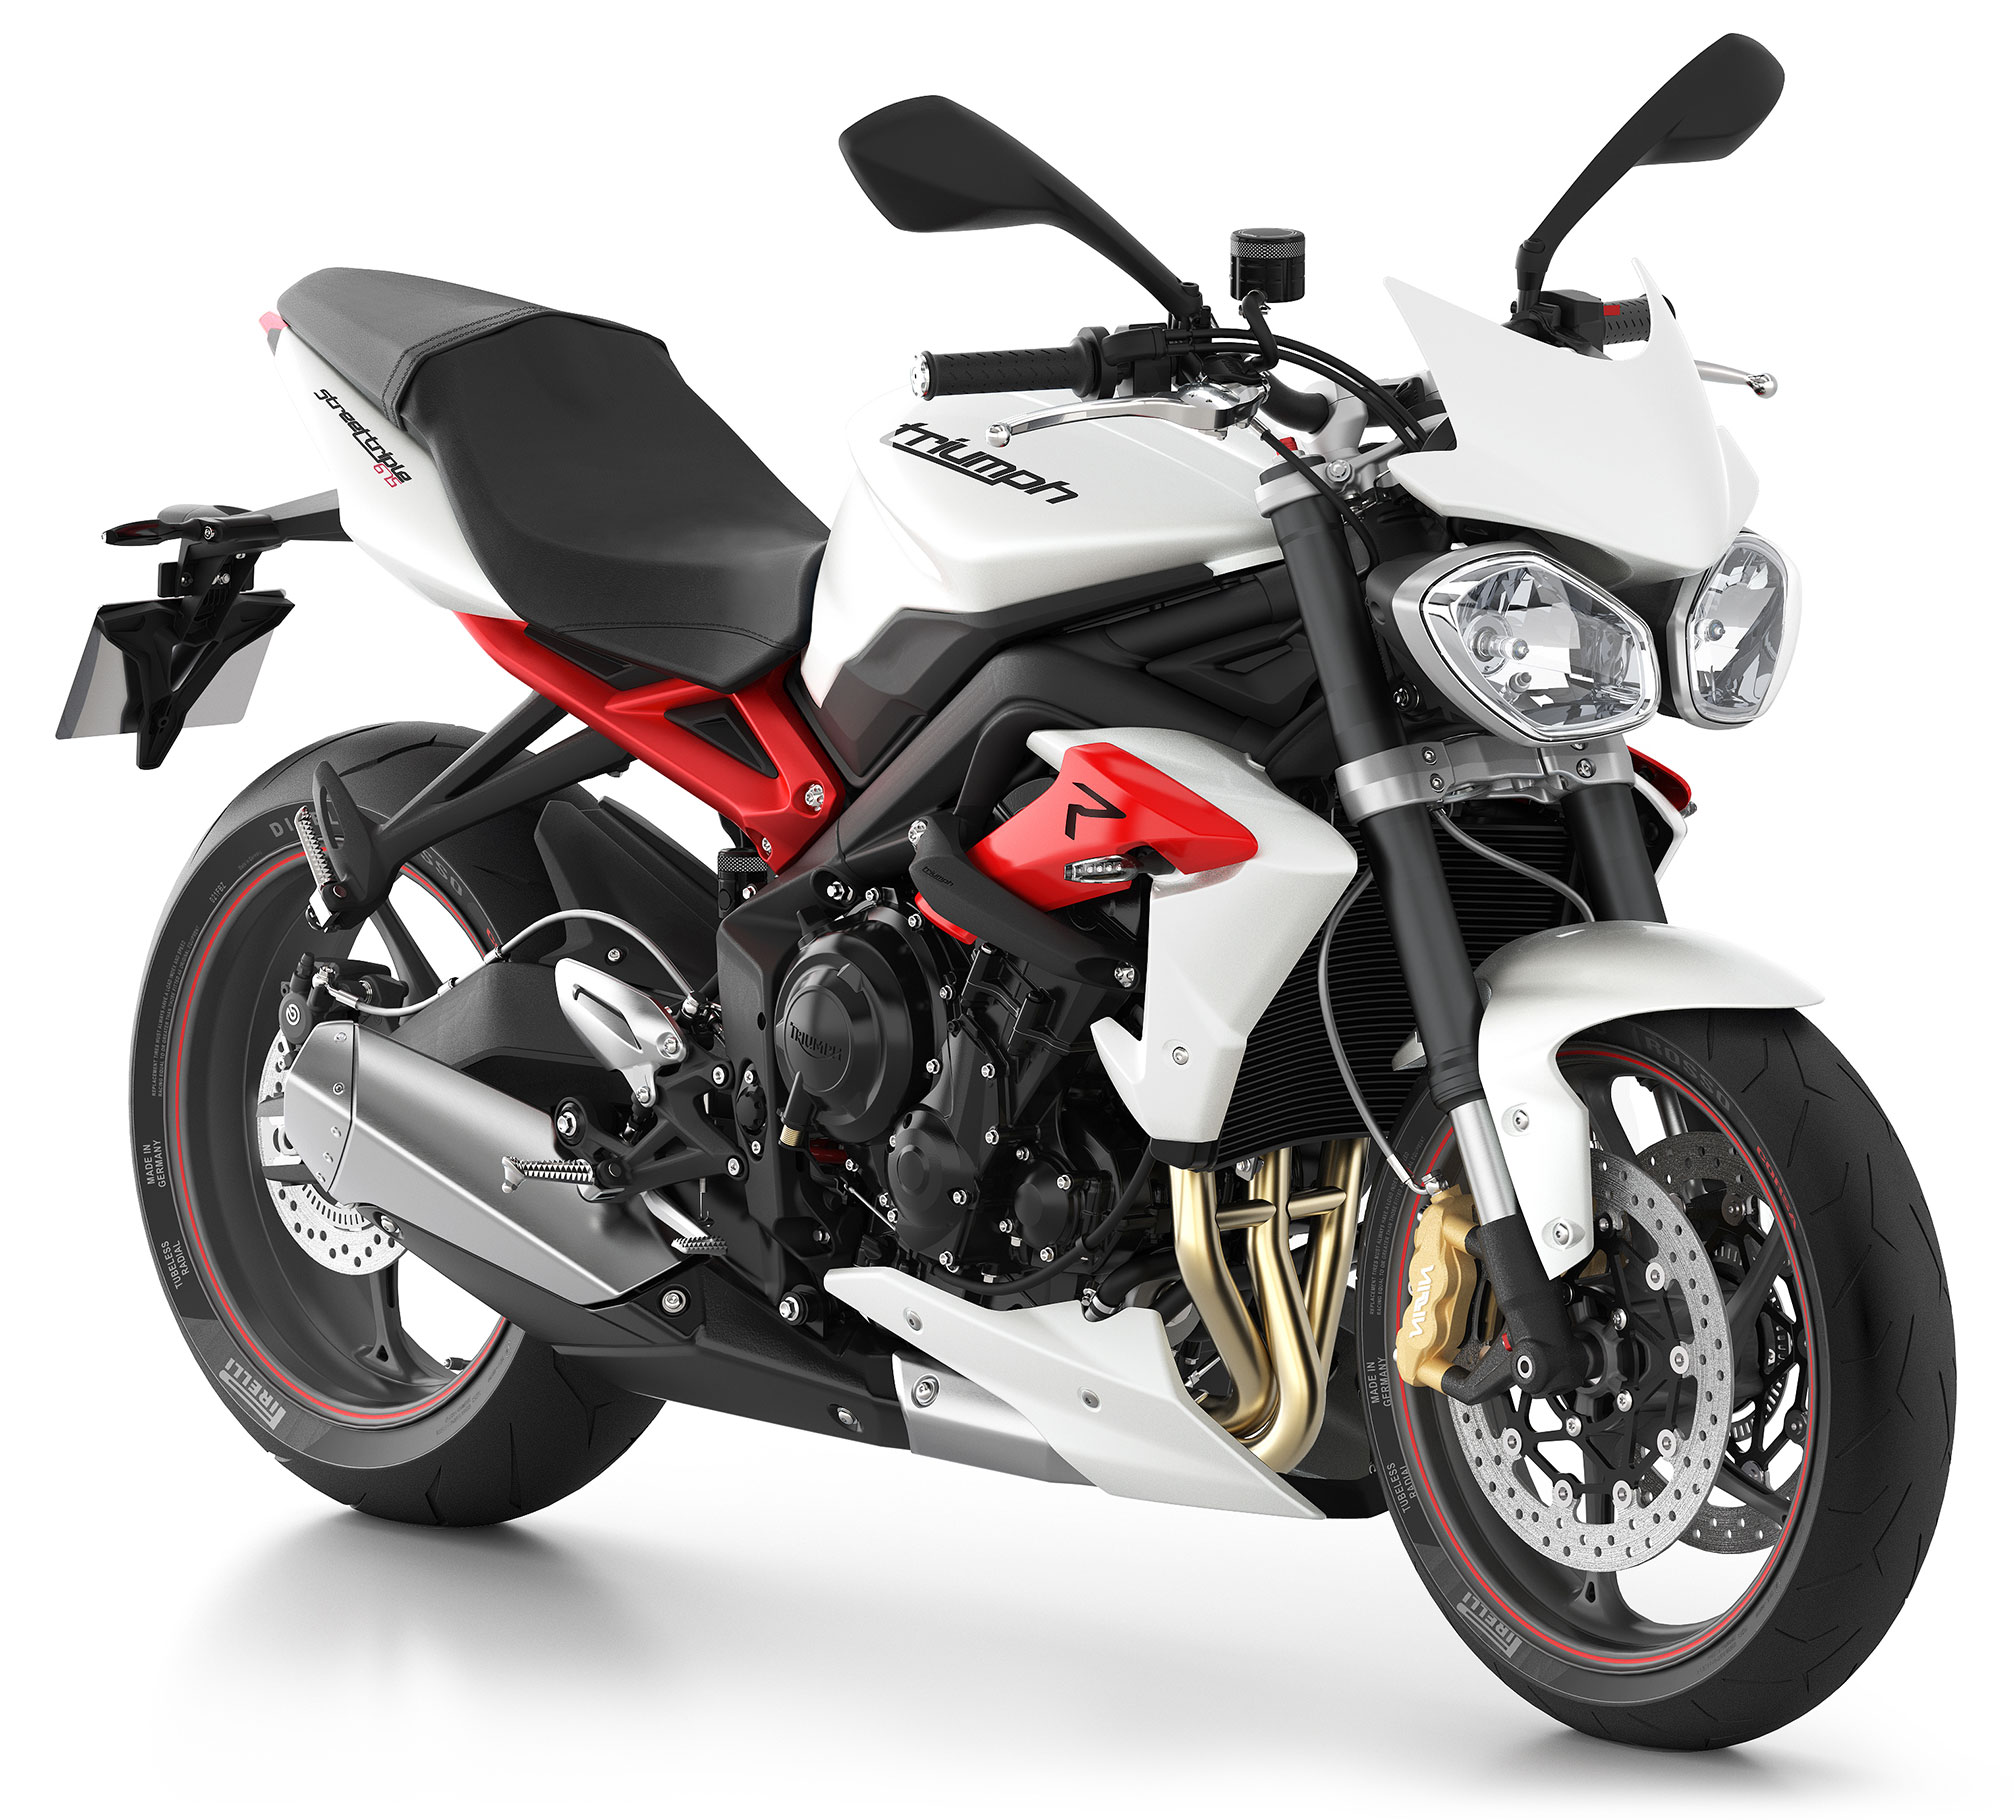 2014 triumph street triple r abs review. Black Bedroom Furniture Sets. Home Design Ideas